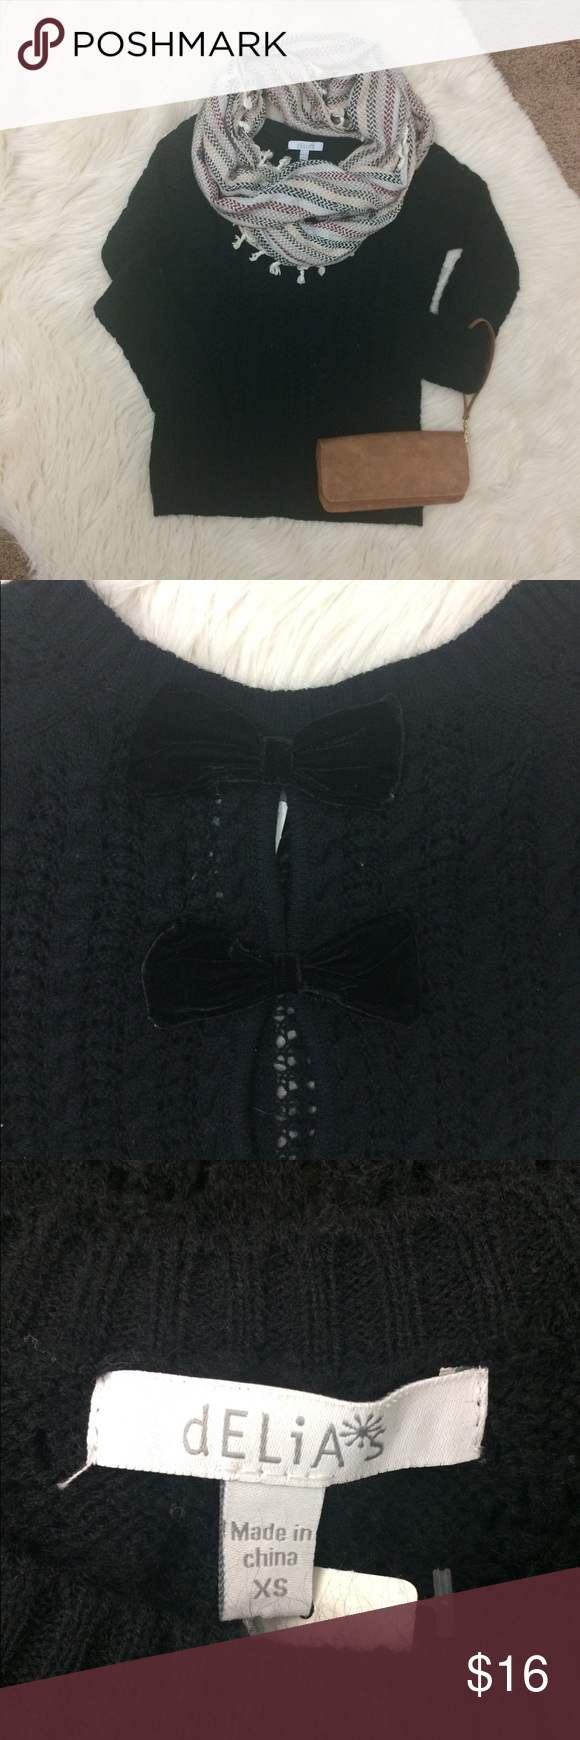 """Knit black sweater with bows in the back W14 Delias size XS open Knit Crewneck long sleeve sweater with velvet bows in the back. No flaws! 17"""" armpit to armpit 24"""" shoulder to hem. delias Sweaters Crew & Scoop Necks"""